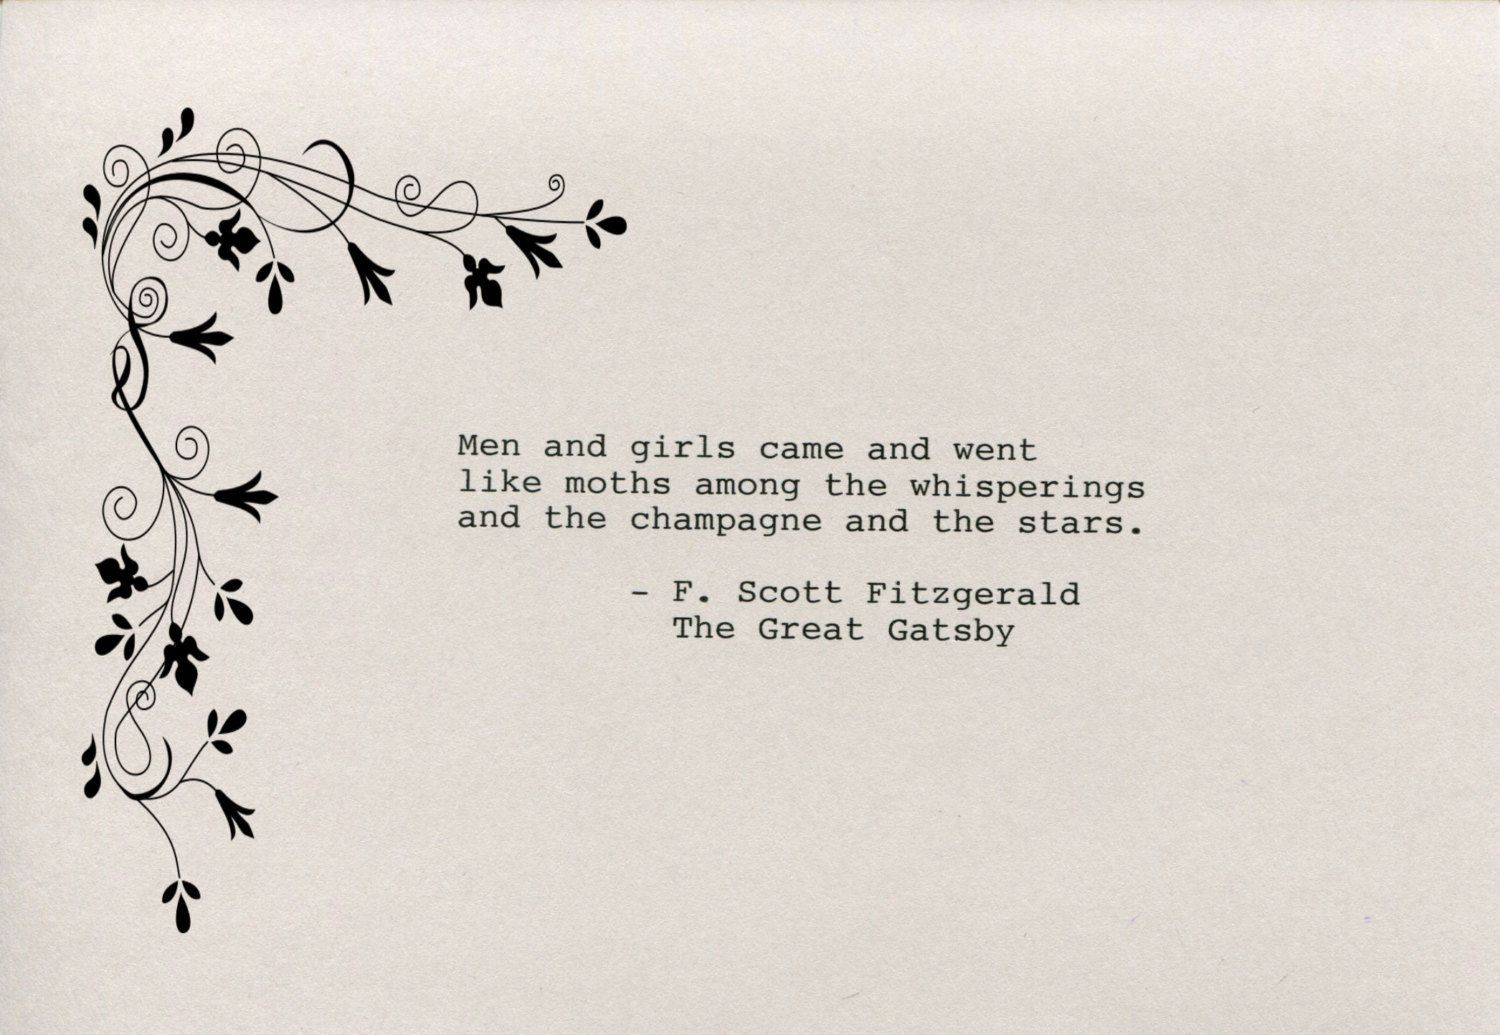 F. Scott Fitzgerald Quote Made on Typewriter The Great Gatsby Art Quote  Wall Art -Men and girls came and went like moths among the